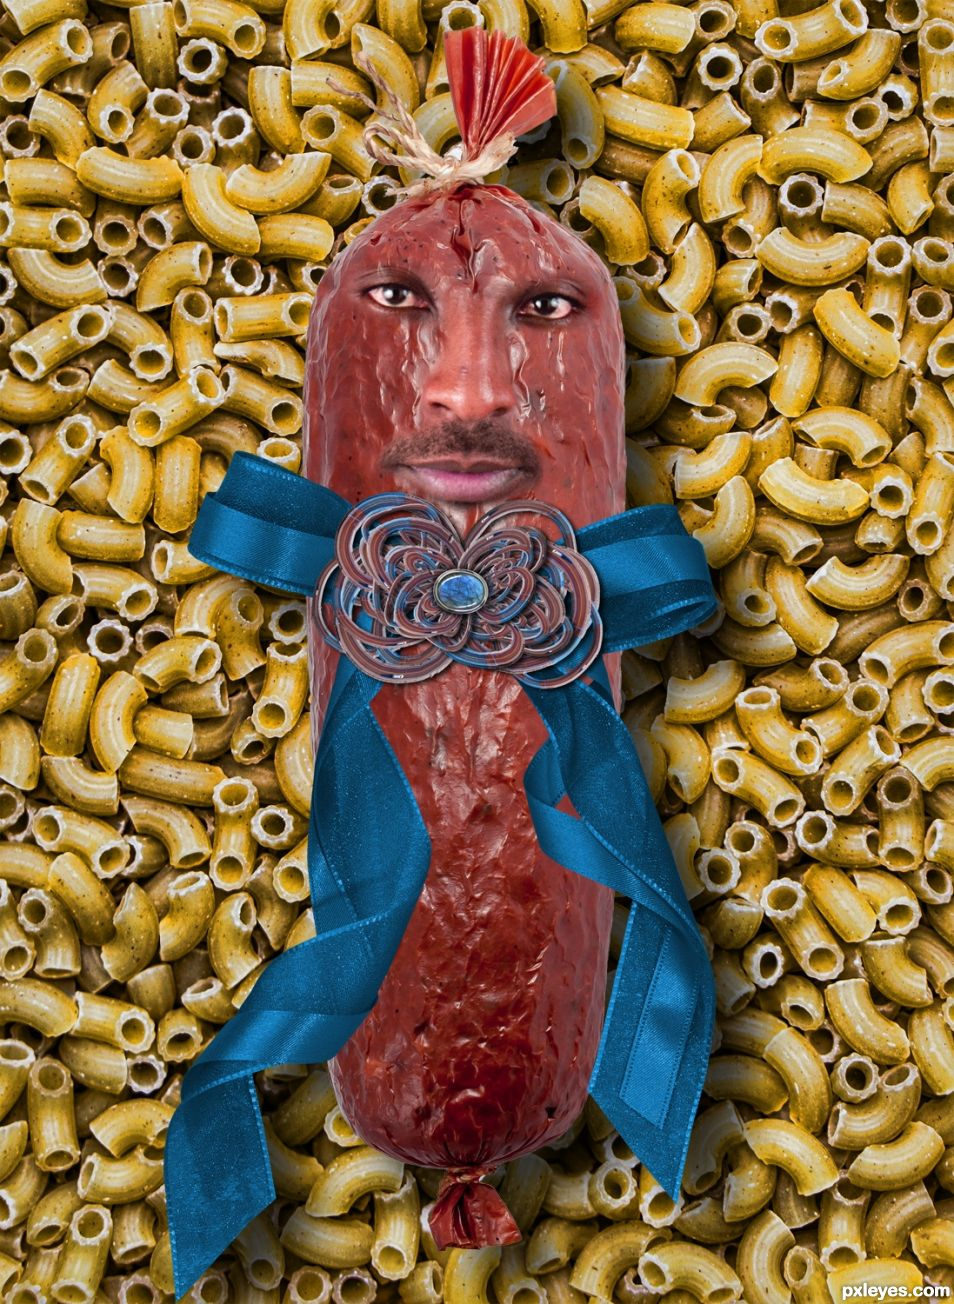 Mr. Sausage with Road Ribbon on Pasta